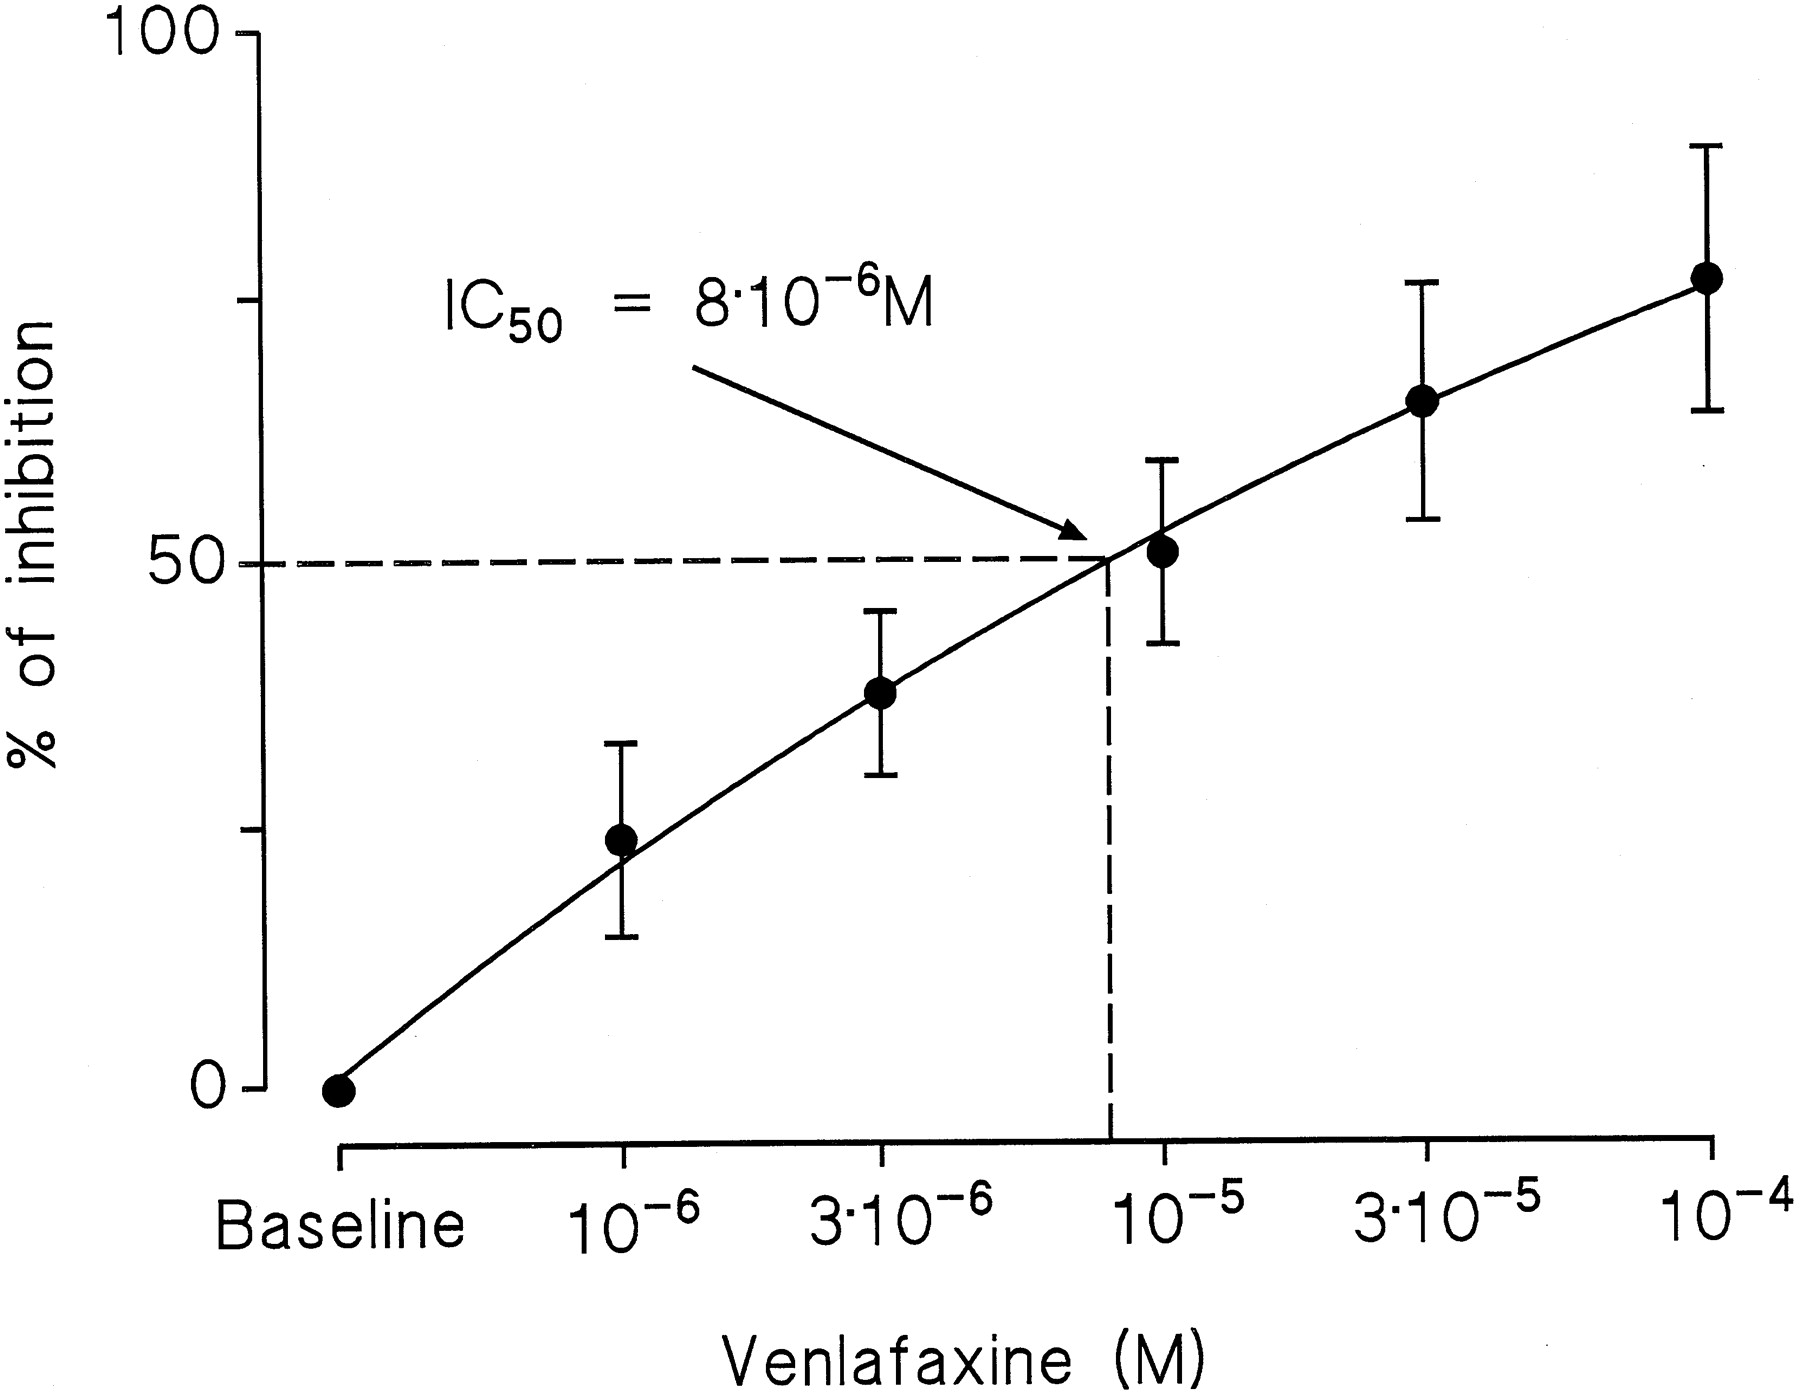 Mechanism Of Sodium Channel Block By Venlafaxine In Guinea Pig Figures 514 Diagrams Led Report Download Figure